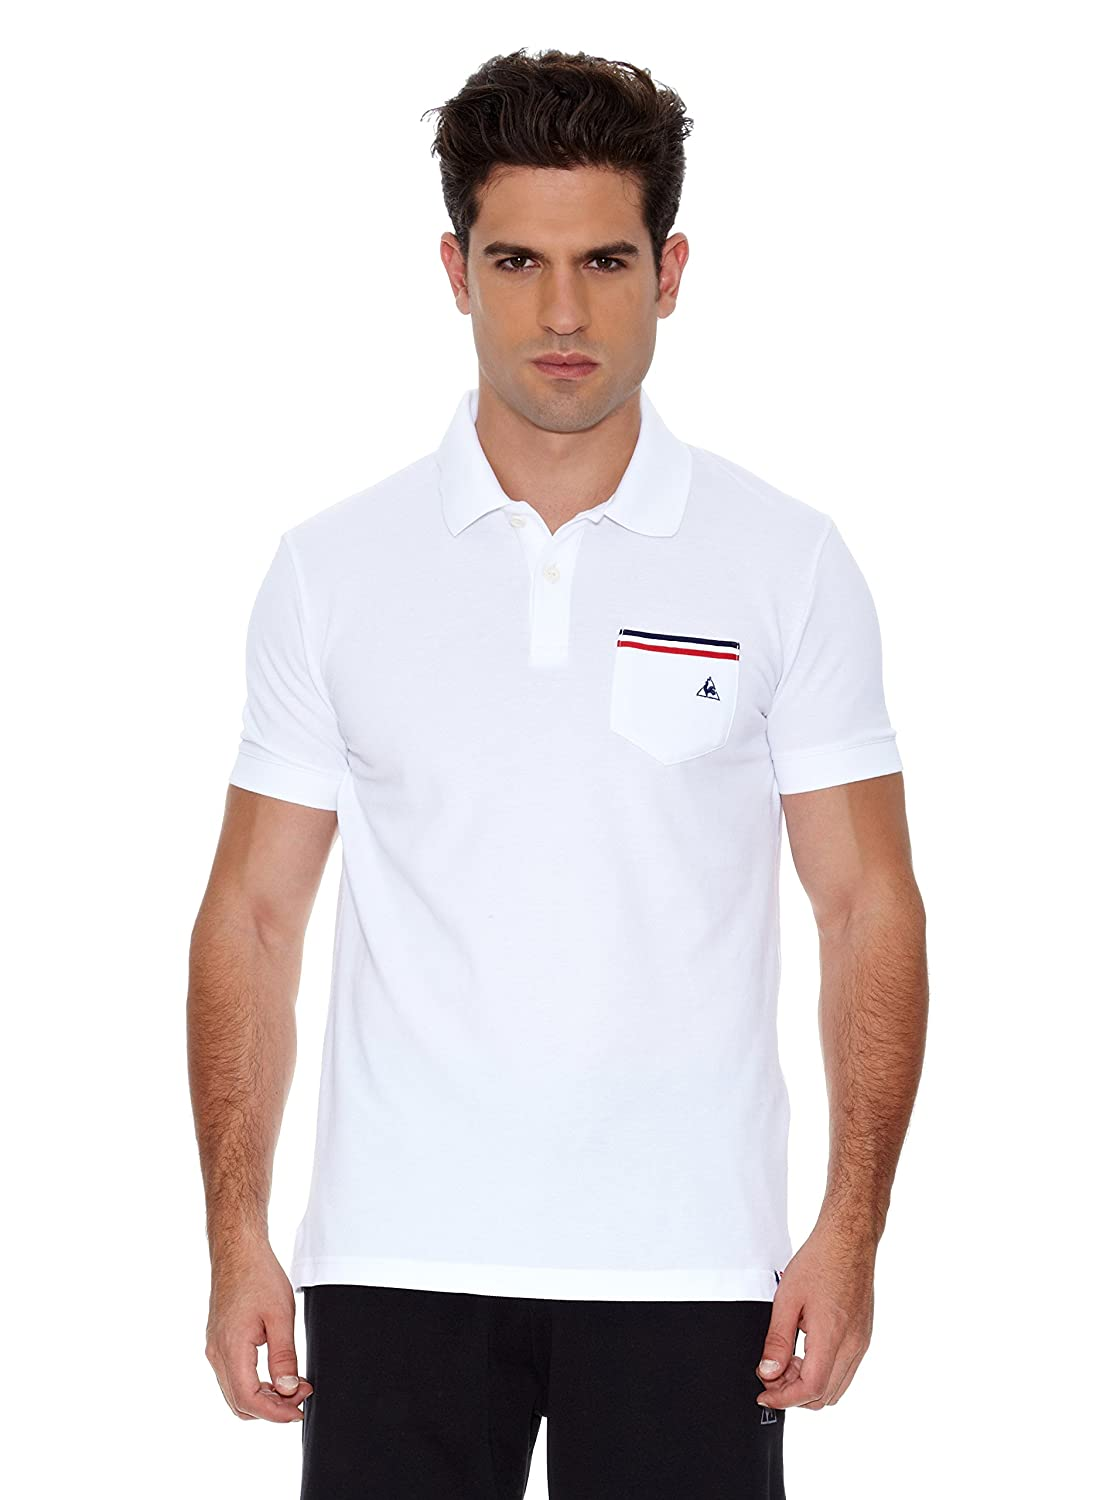 Le Coq Sportif Polo Tricolores Pavot Polo SS Blanco M: Amazon.es ...